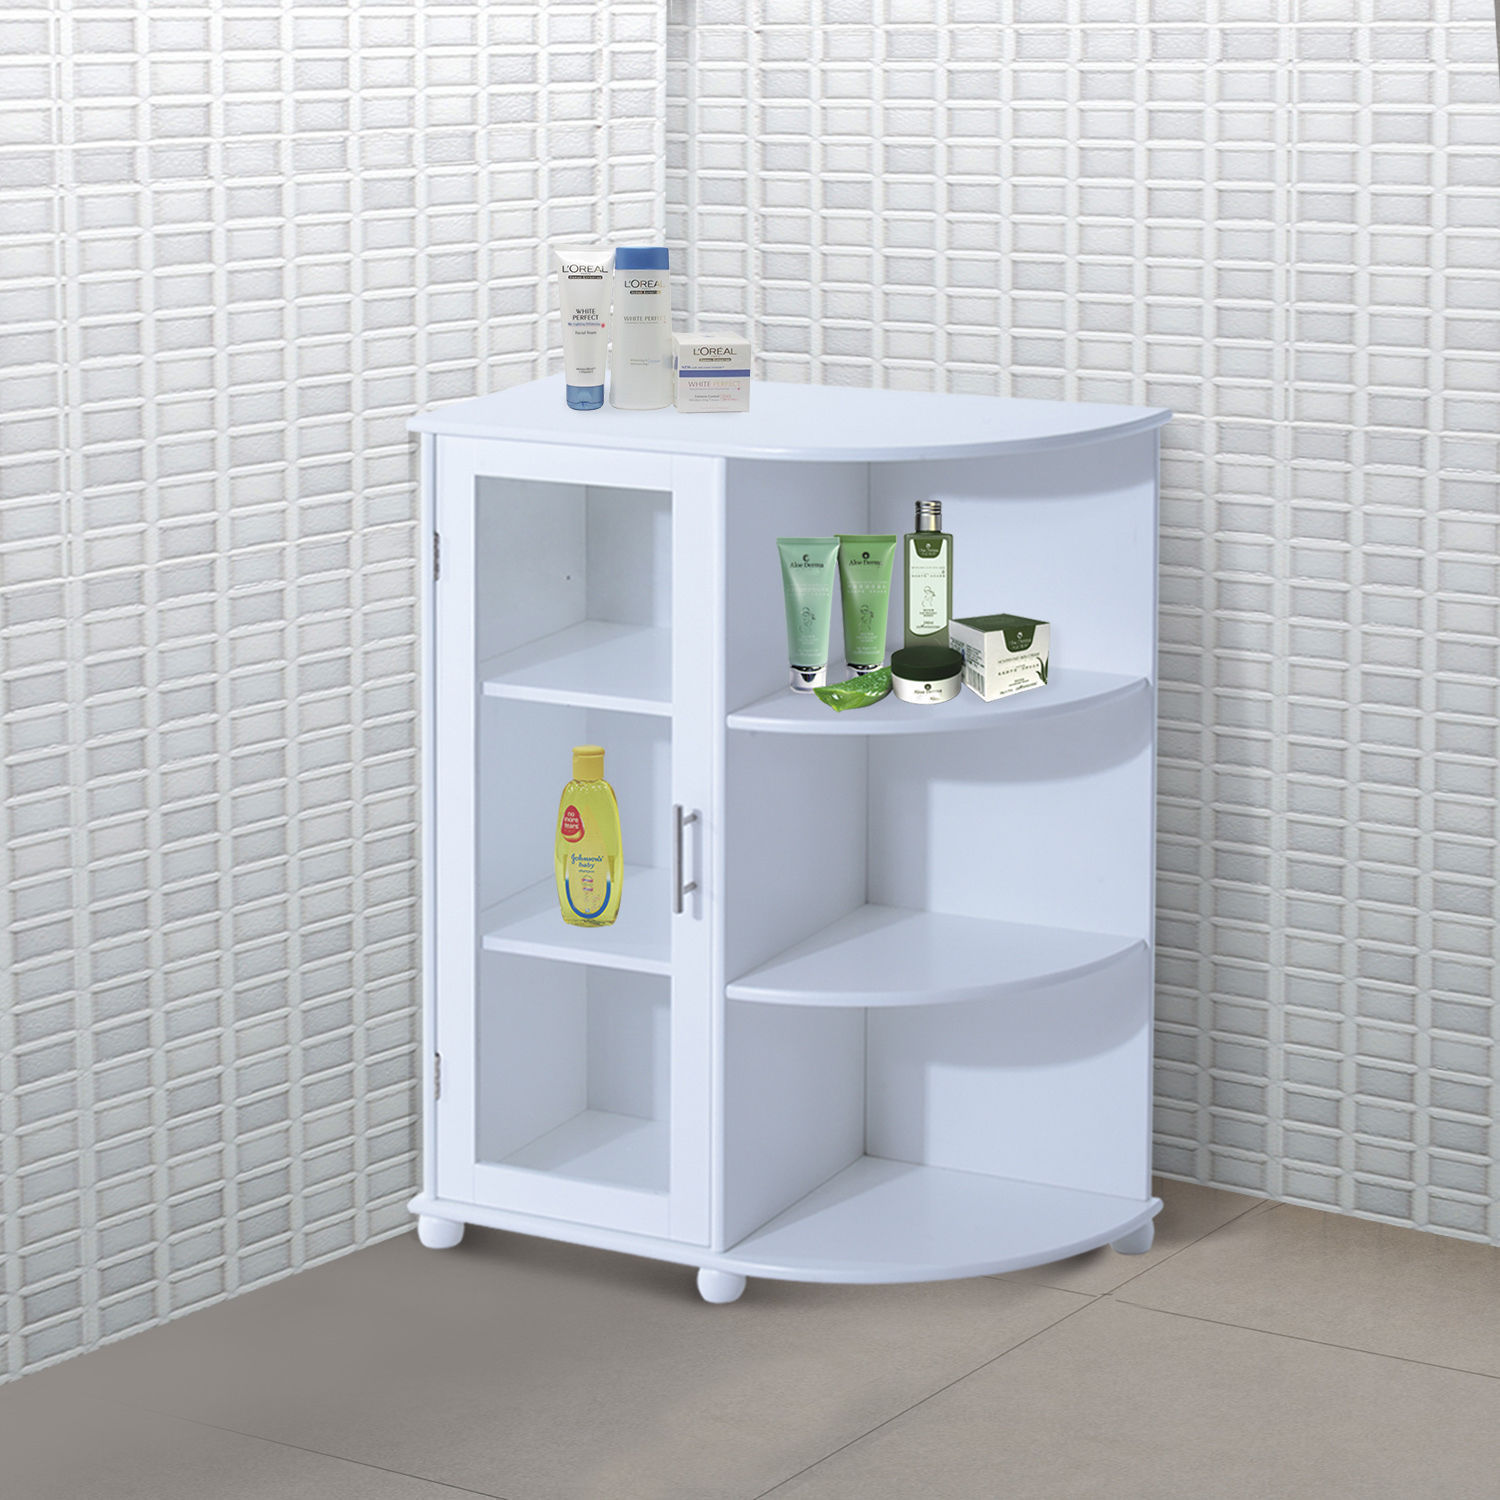 rack large floor cupboard over wicker toilet and gloss cabinet extra shelf furniture bathroom bath of for dresser bathrooms small in glass ideas storage organizer decorative shelves hanging table cabinets with above wall doors ikea white units wood size walmart